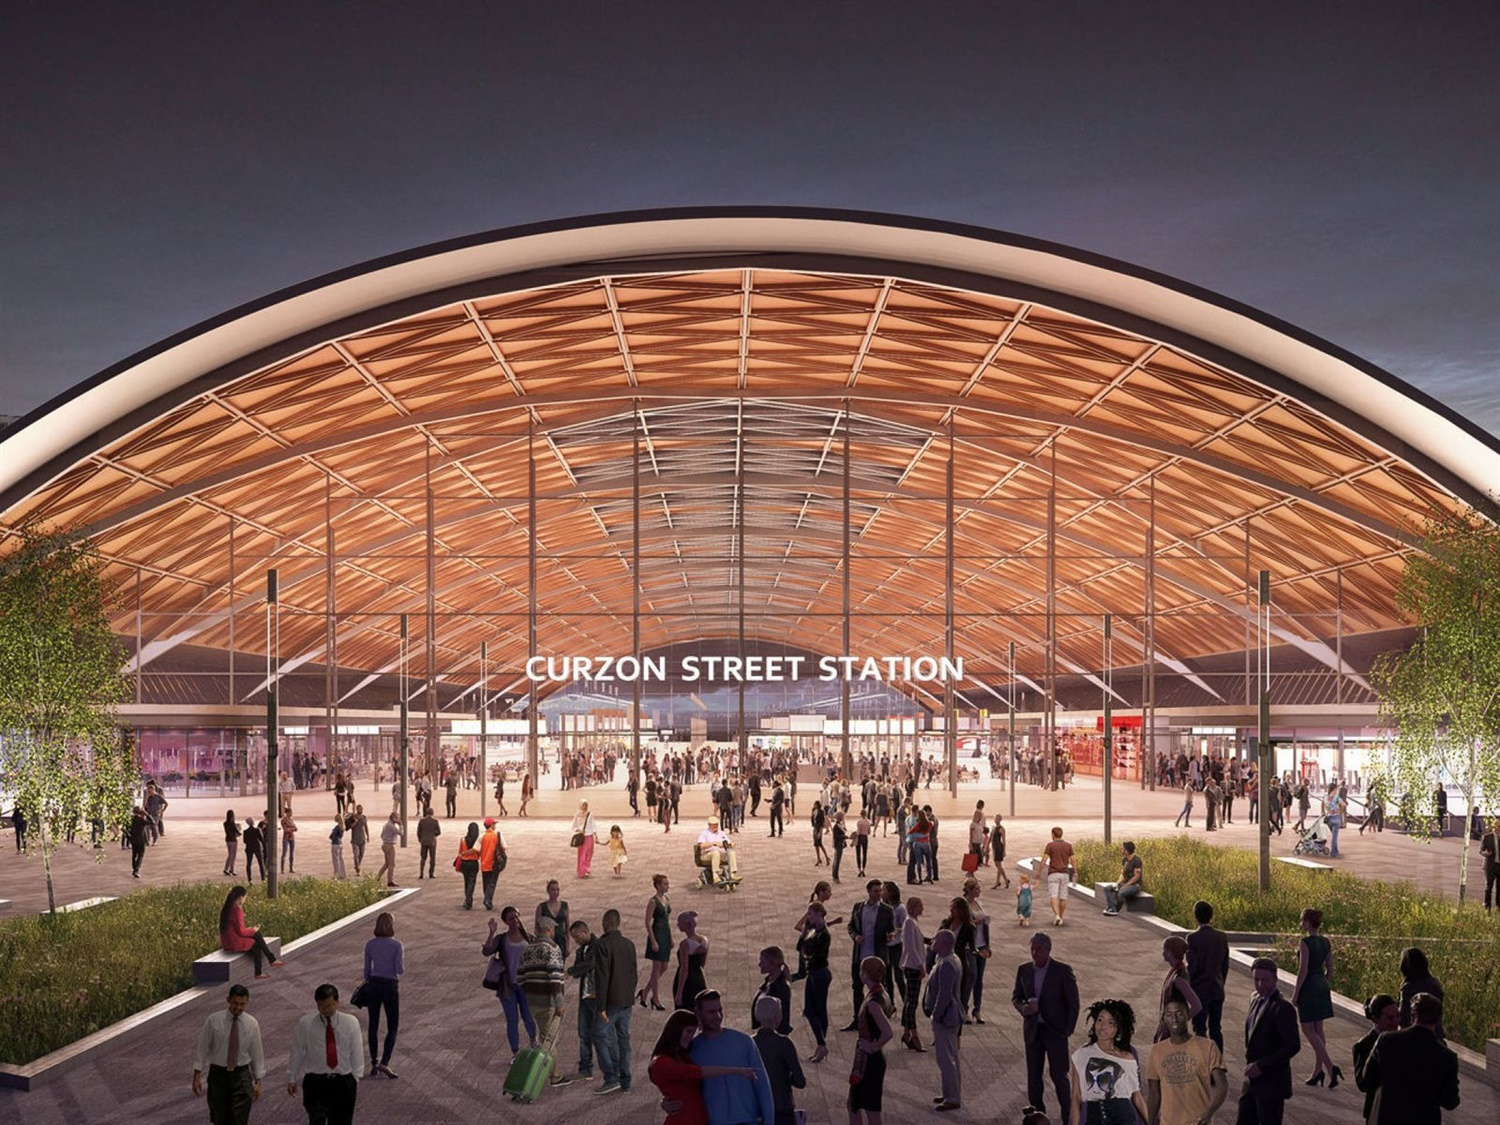 HS2 kicks off the bid race to build Curzon Street station